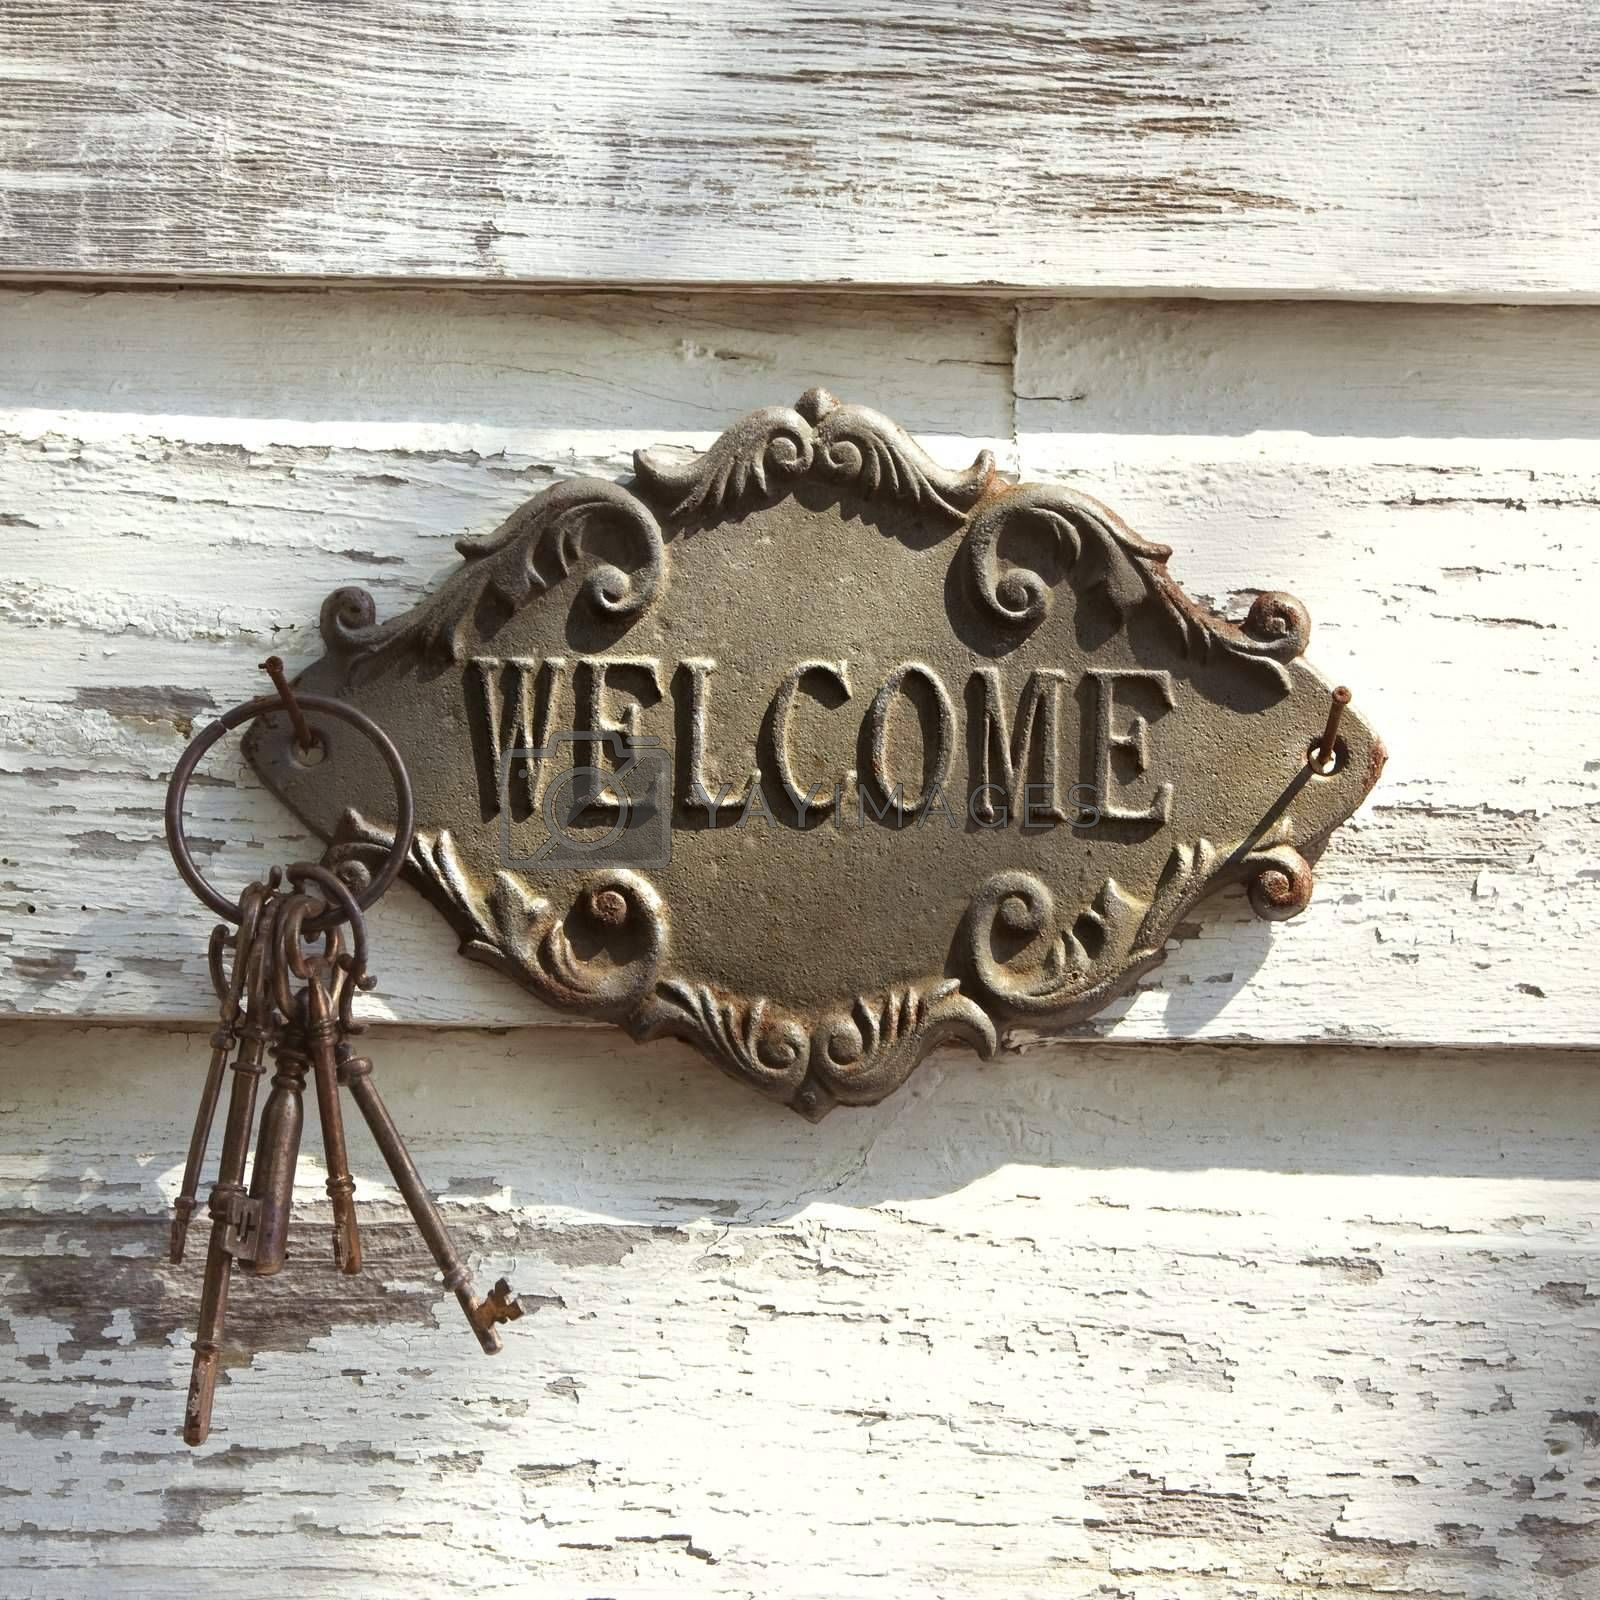 Welcome sign and metal keys on old white peeling building.